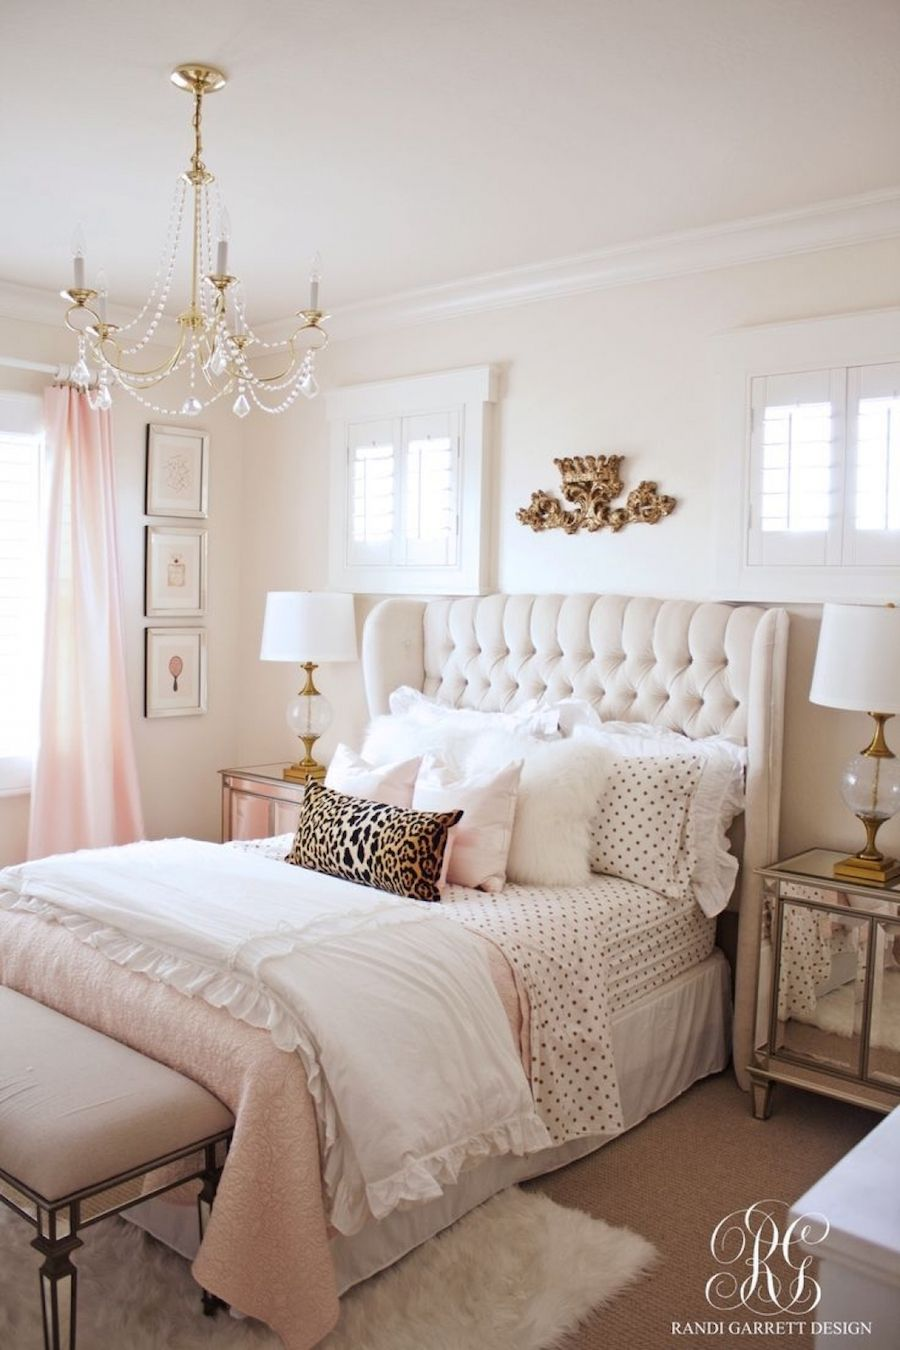 12 dreamy decor ideas for the bedroom white tufted headboards 12 dreamy decor ideas for the bedroom